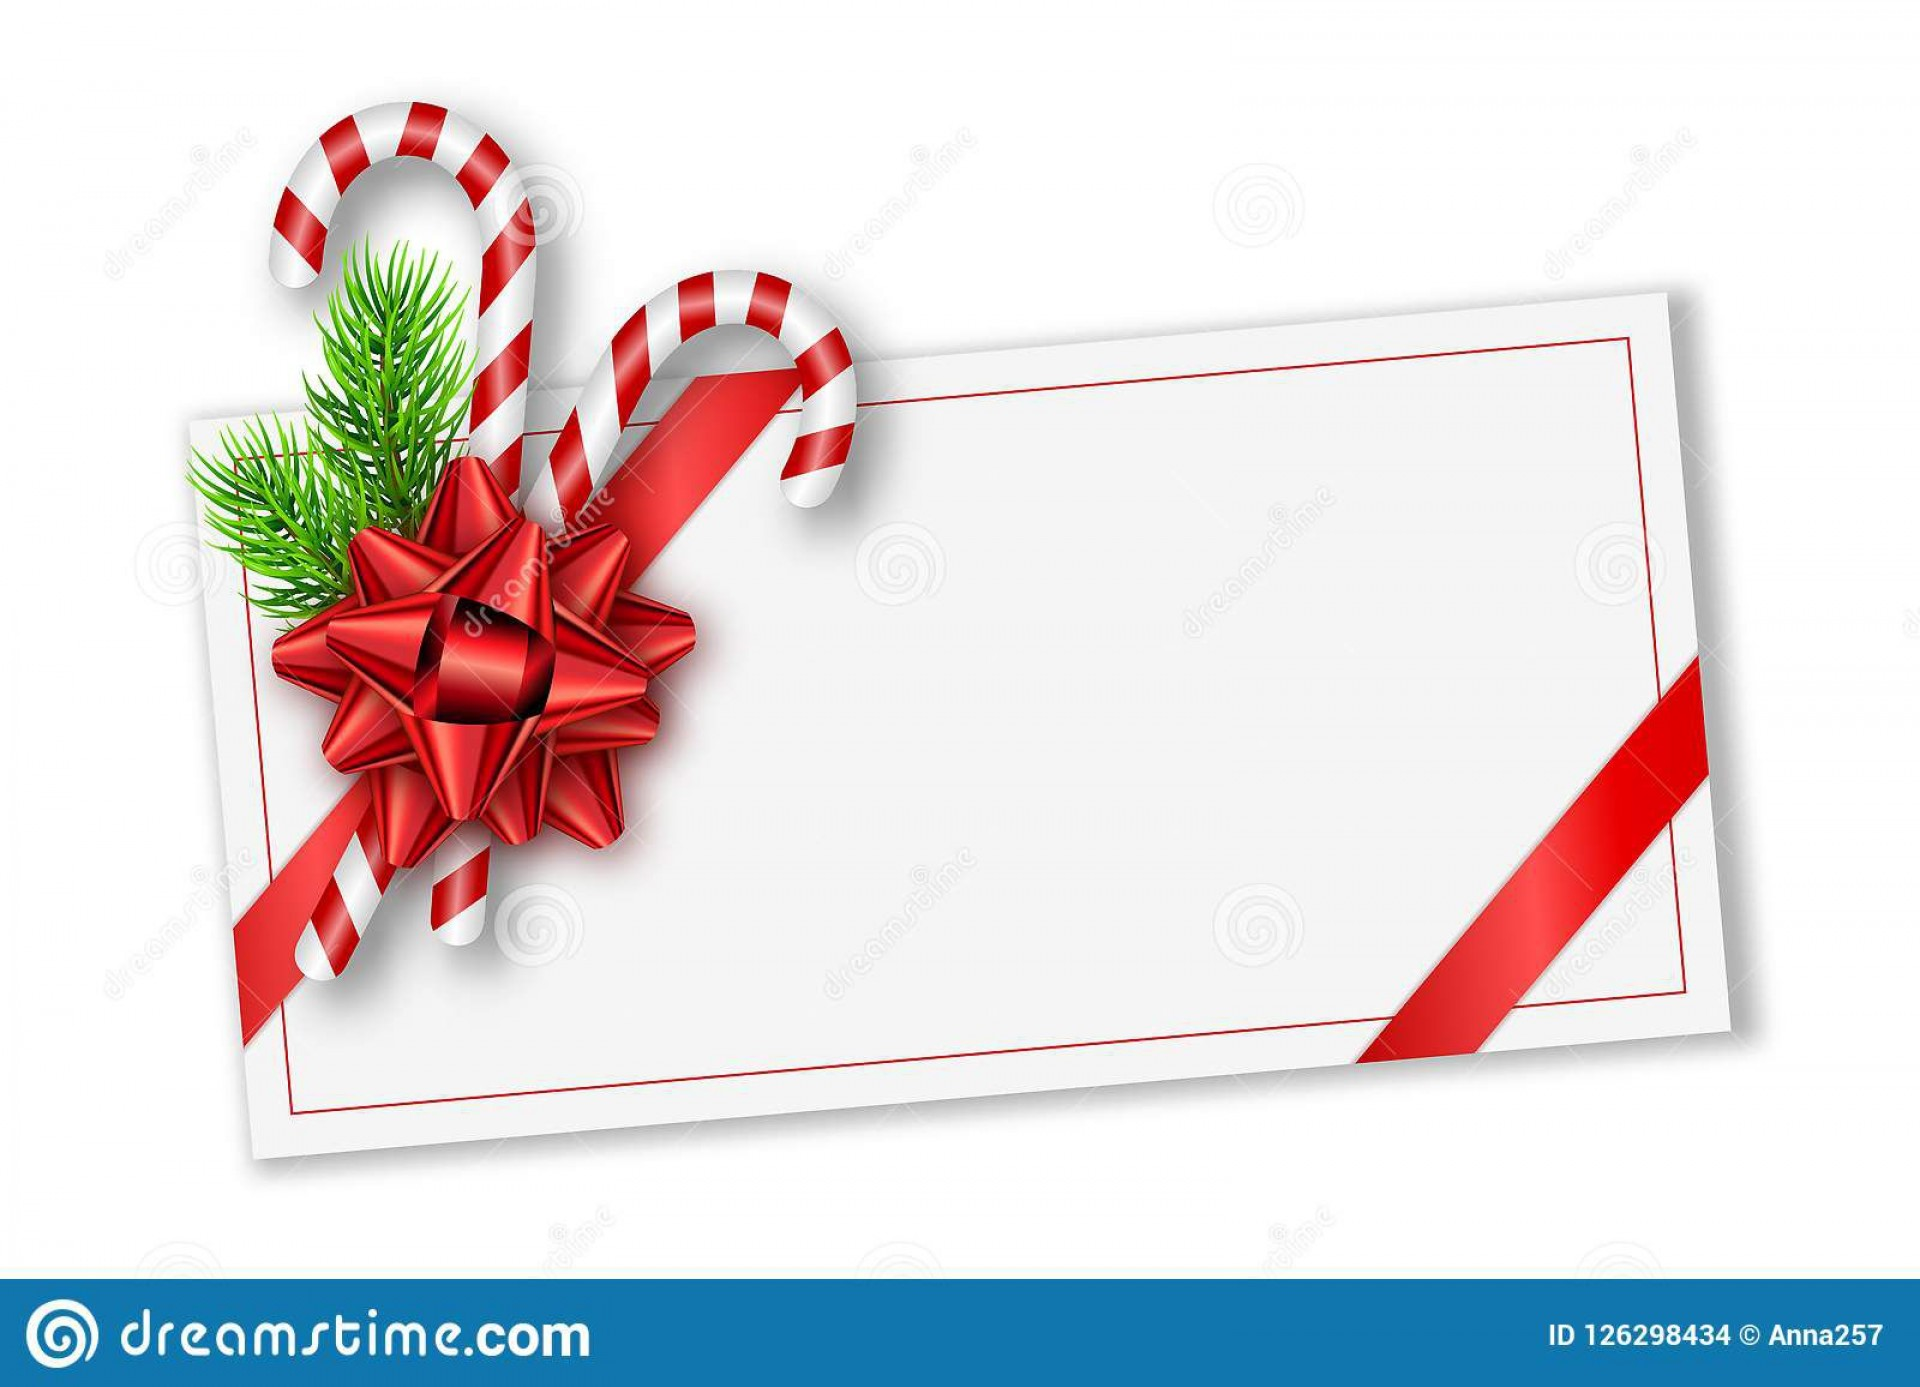 008 Unusual Template For Christma Gift Card Design  Word Certificate Sample1920